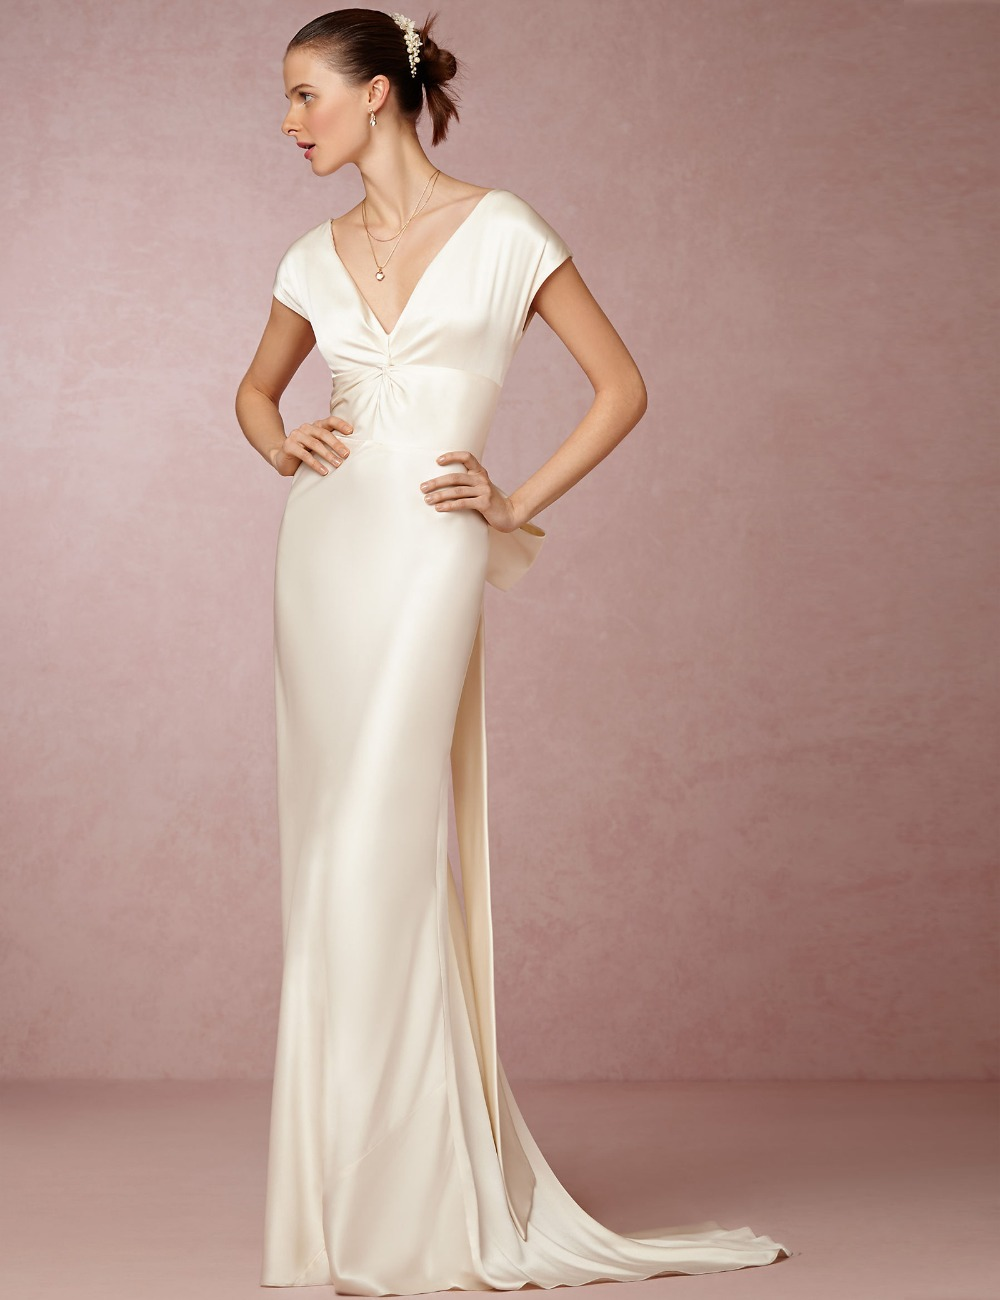 Elegant silk wedding dresses sang maestro silk wedding dresses ombrellifo Image collections